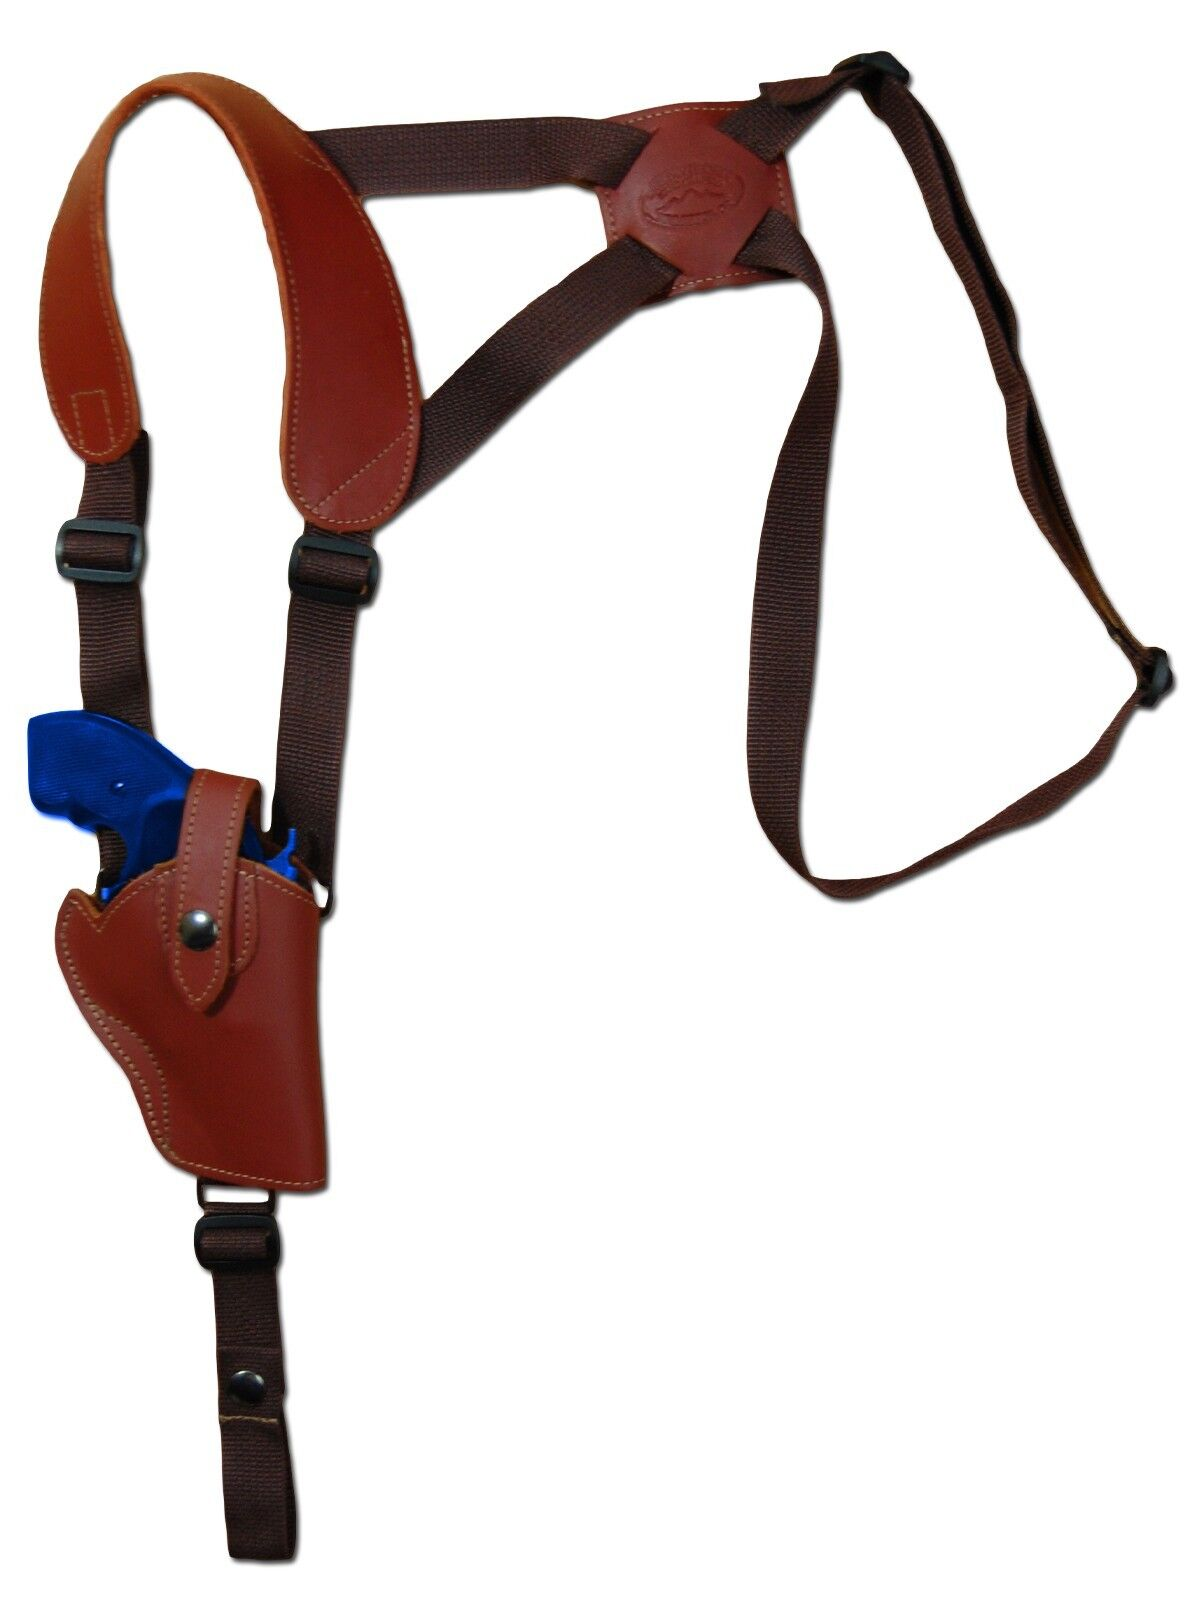 NEW Barsony Burgundy Leder Vertical Gun Shoulder Holster Taurus 2